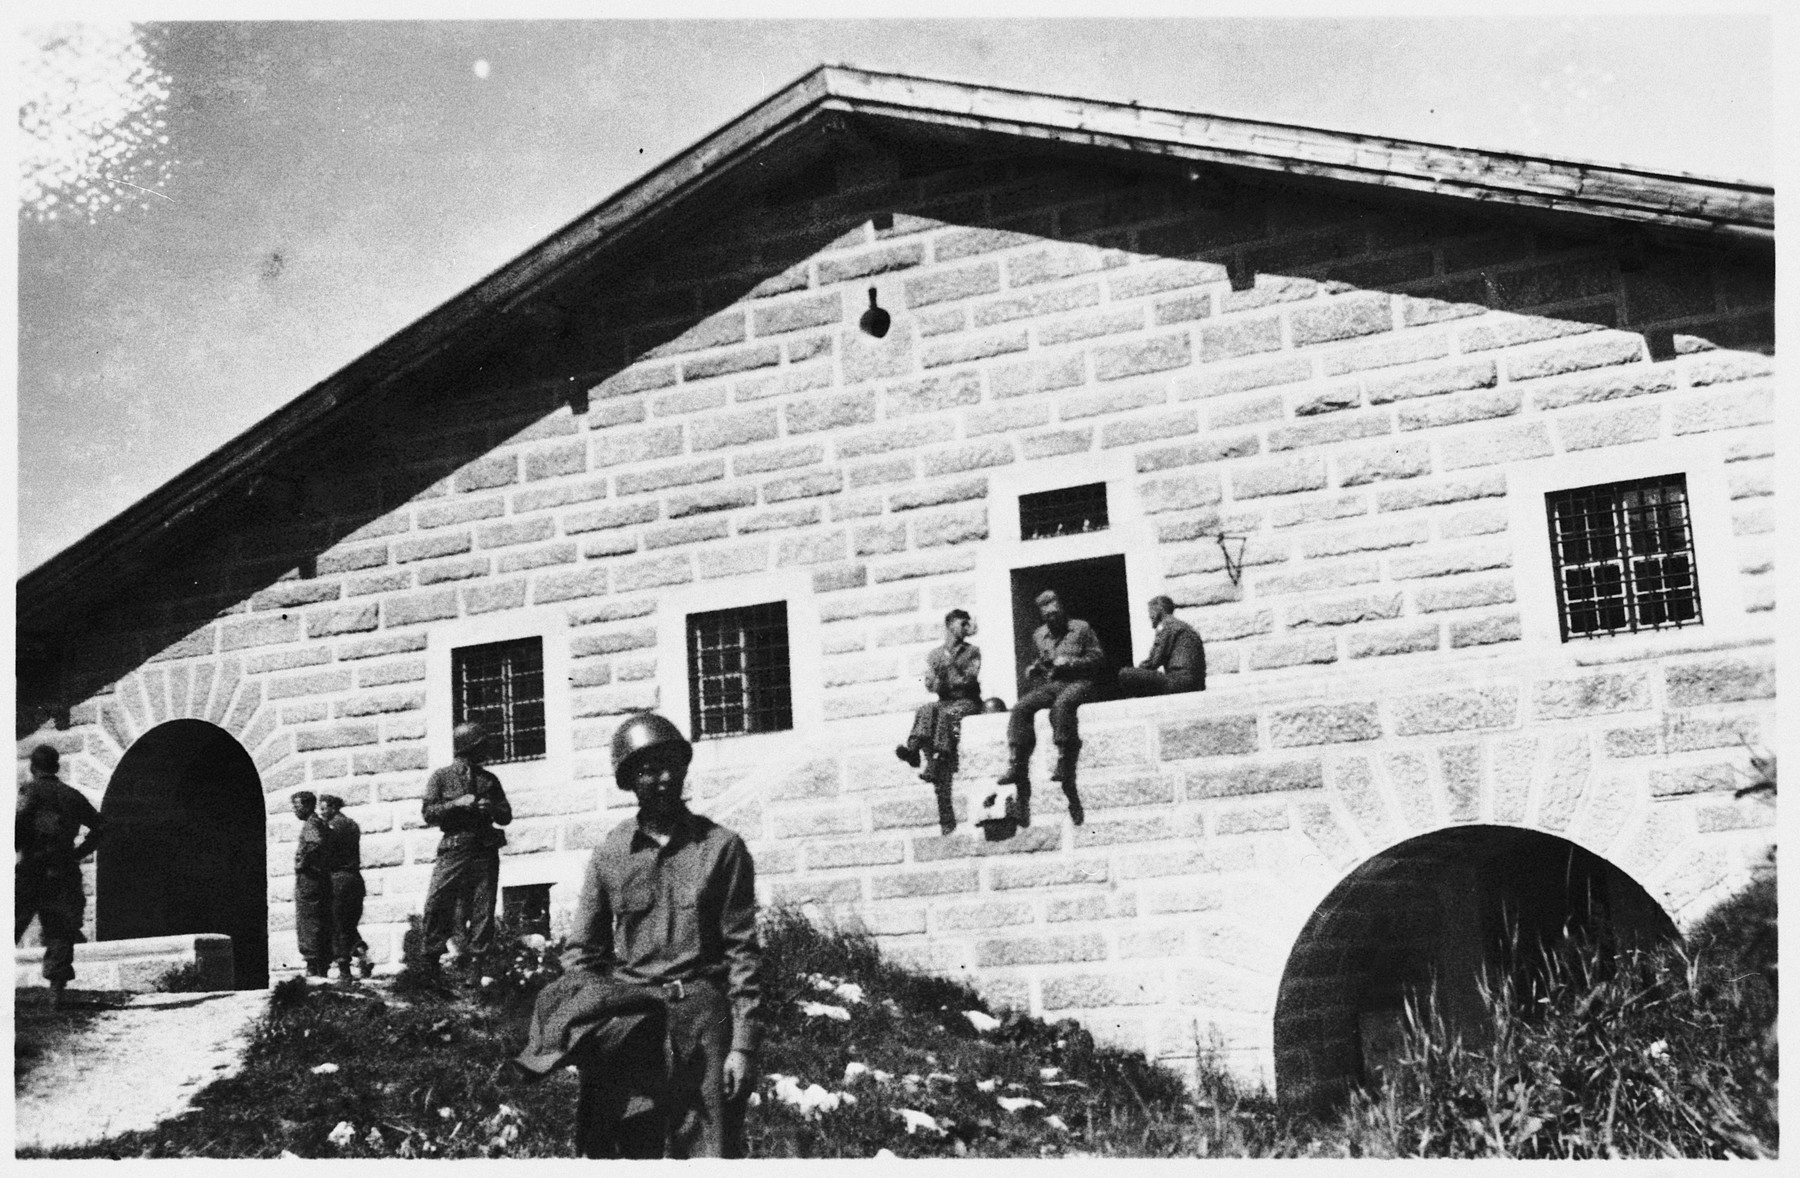 Japanese-Americans with the 522nd Field Artillery Battalion pose outside the destroyed Berghof, Hitler's mountain retreat in the Bavarian Alps.